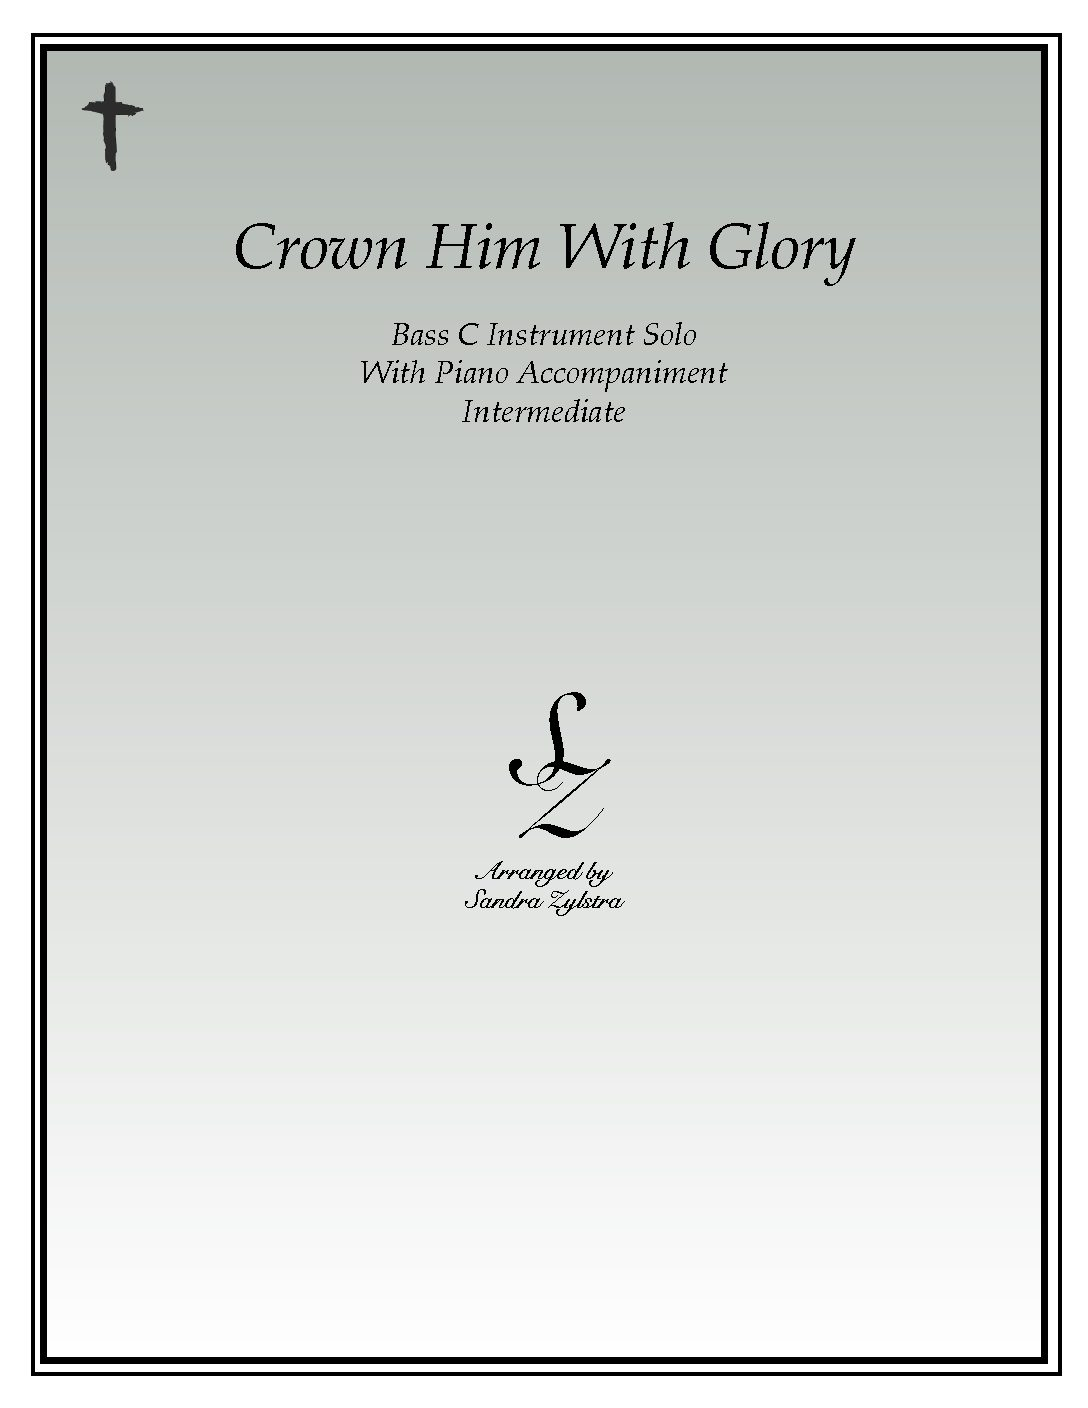 IS 22 Crown Him With Glory 05 Bass C pdf